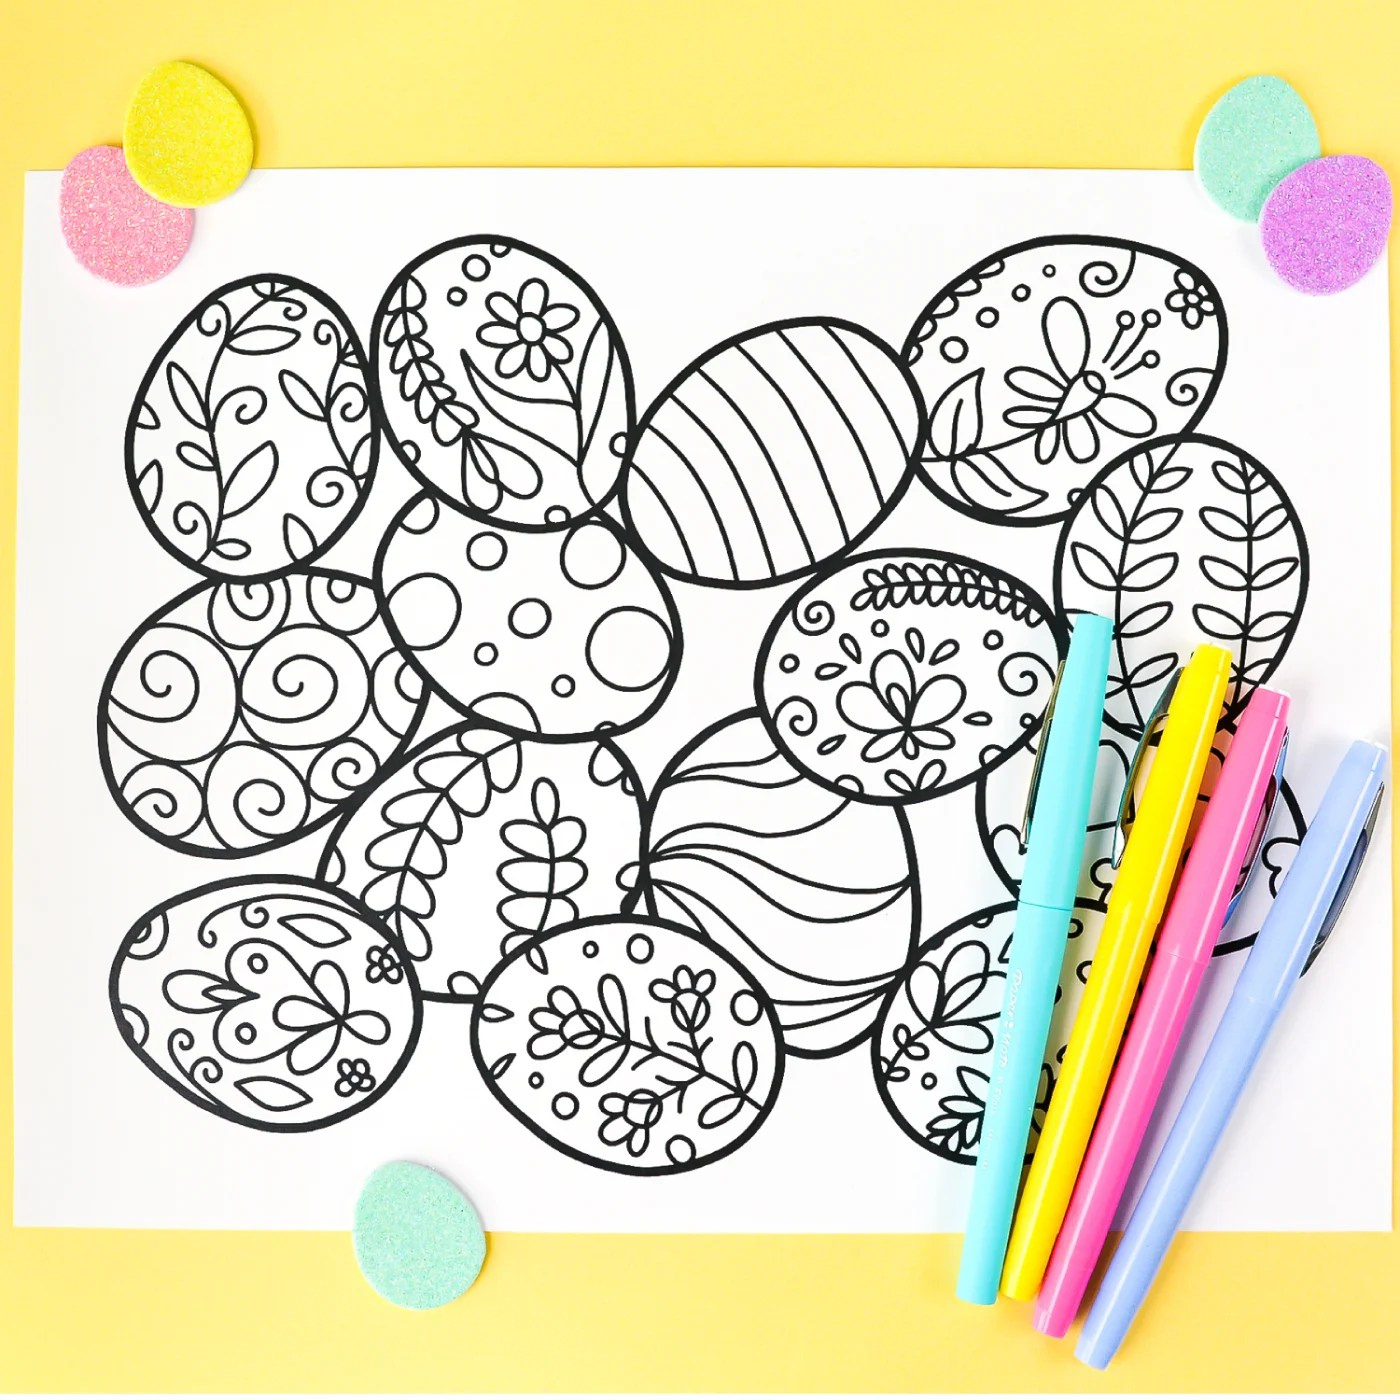 photograph regarding Printable Eggs named Free of charge Printable Easter Coloring Site - Hey, Allows Produce Things